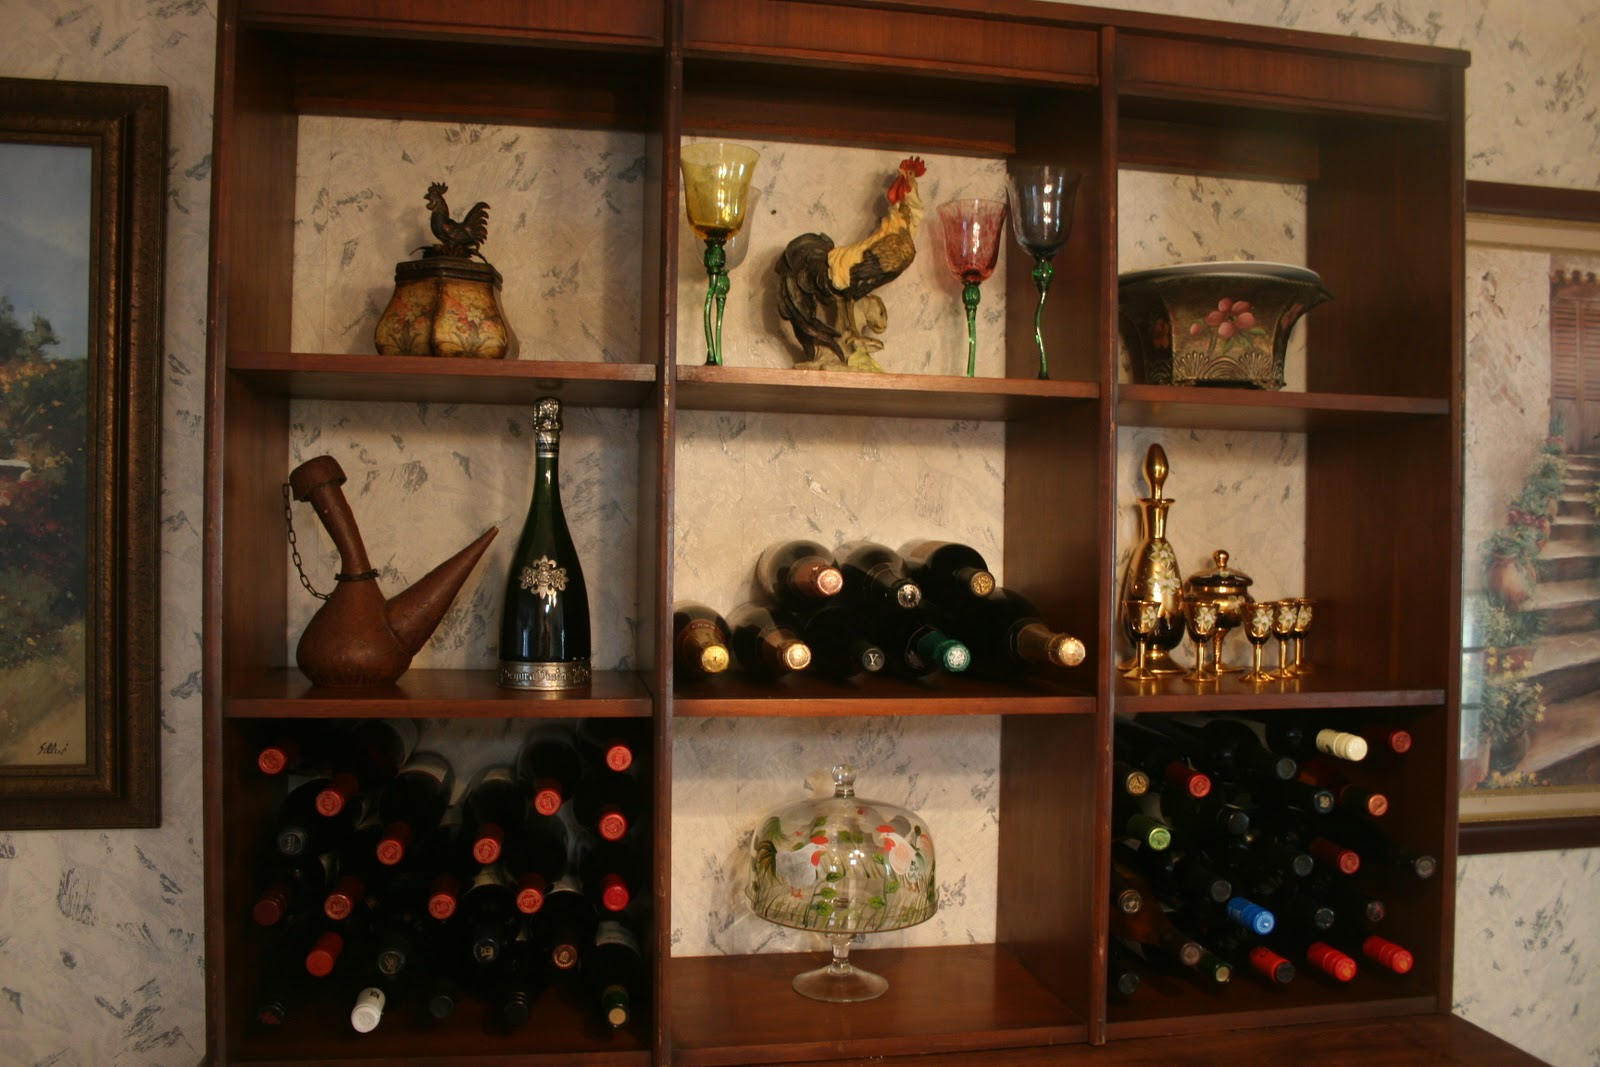 ... : Repurposed Sideboard and shelf unit = china wine and glass cabinet